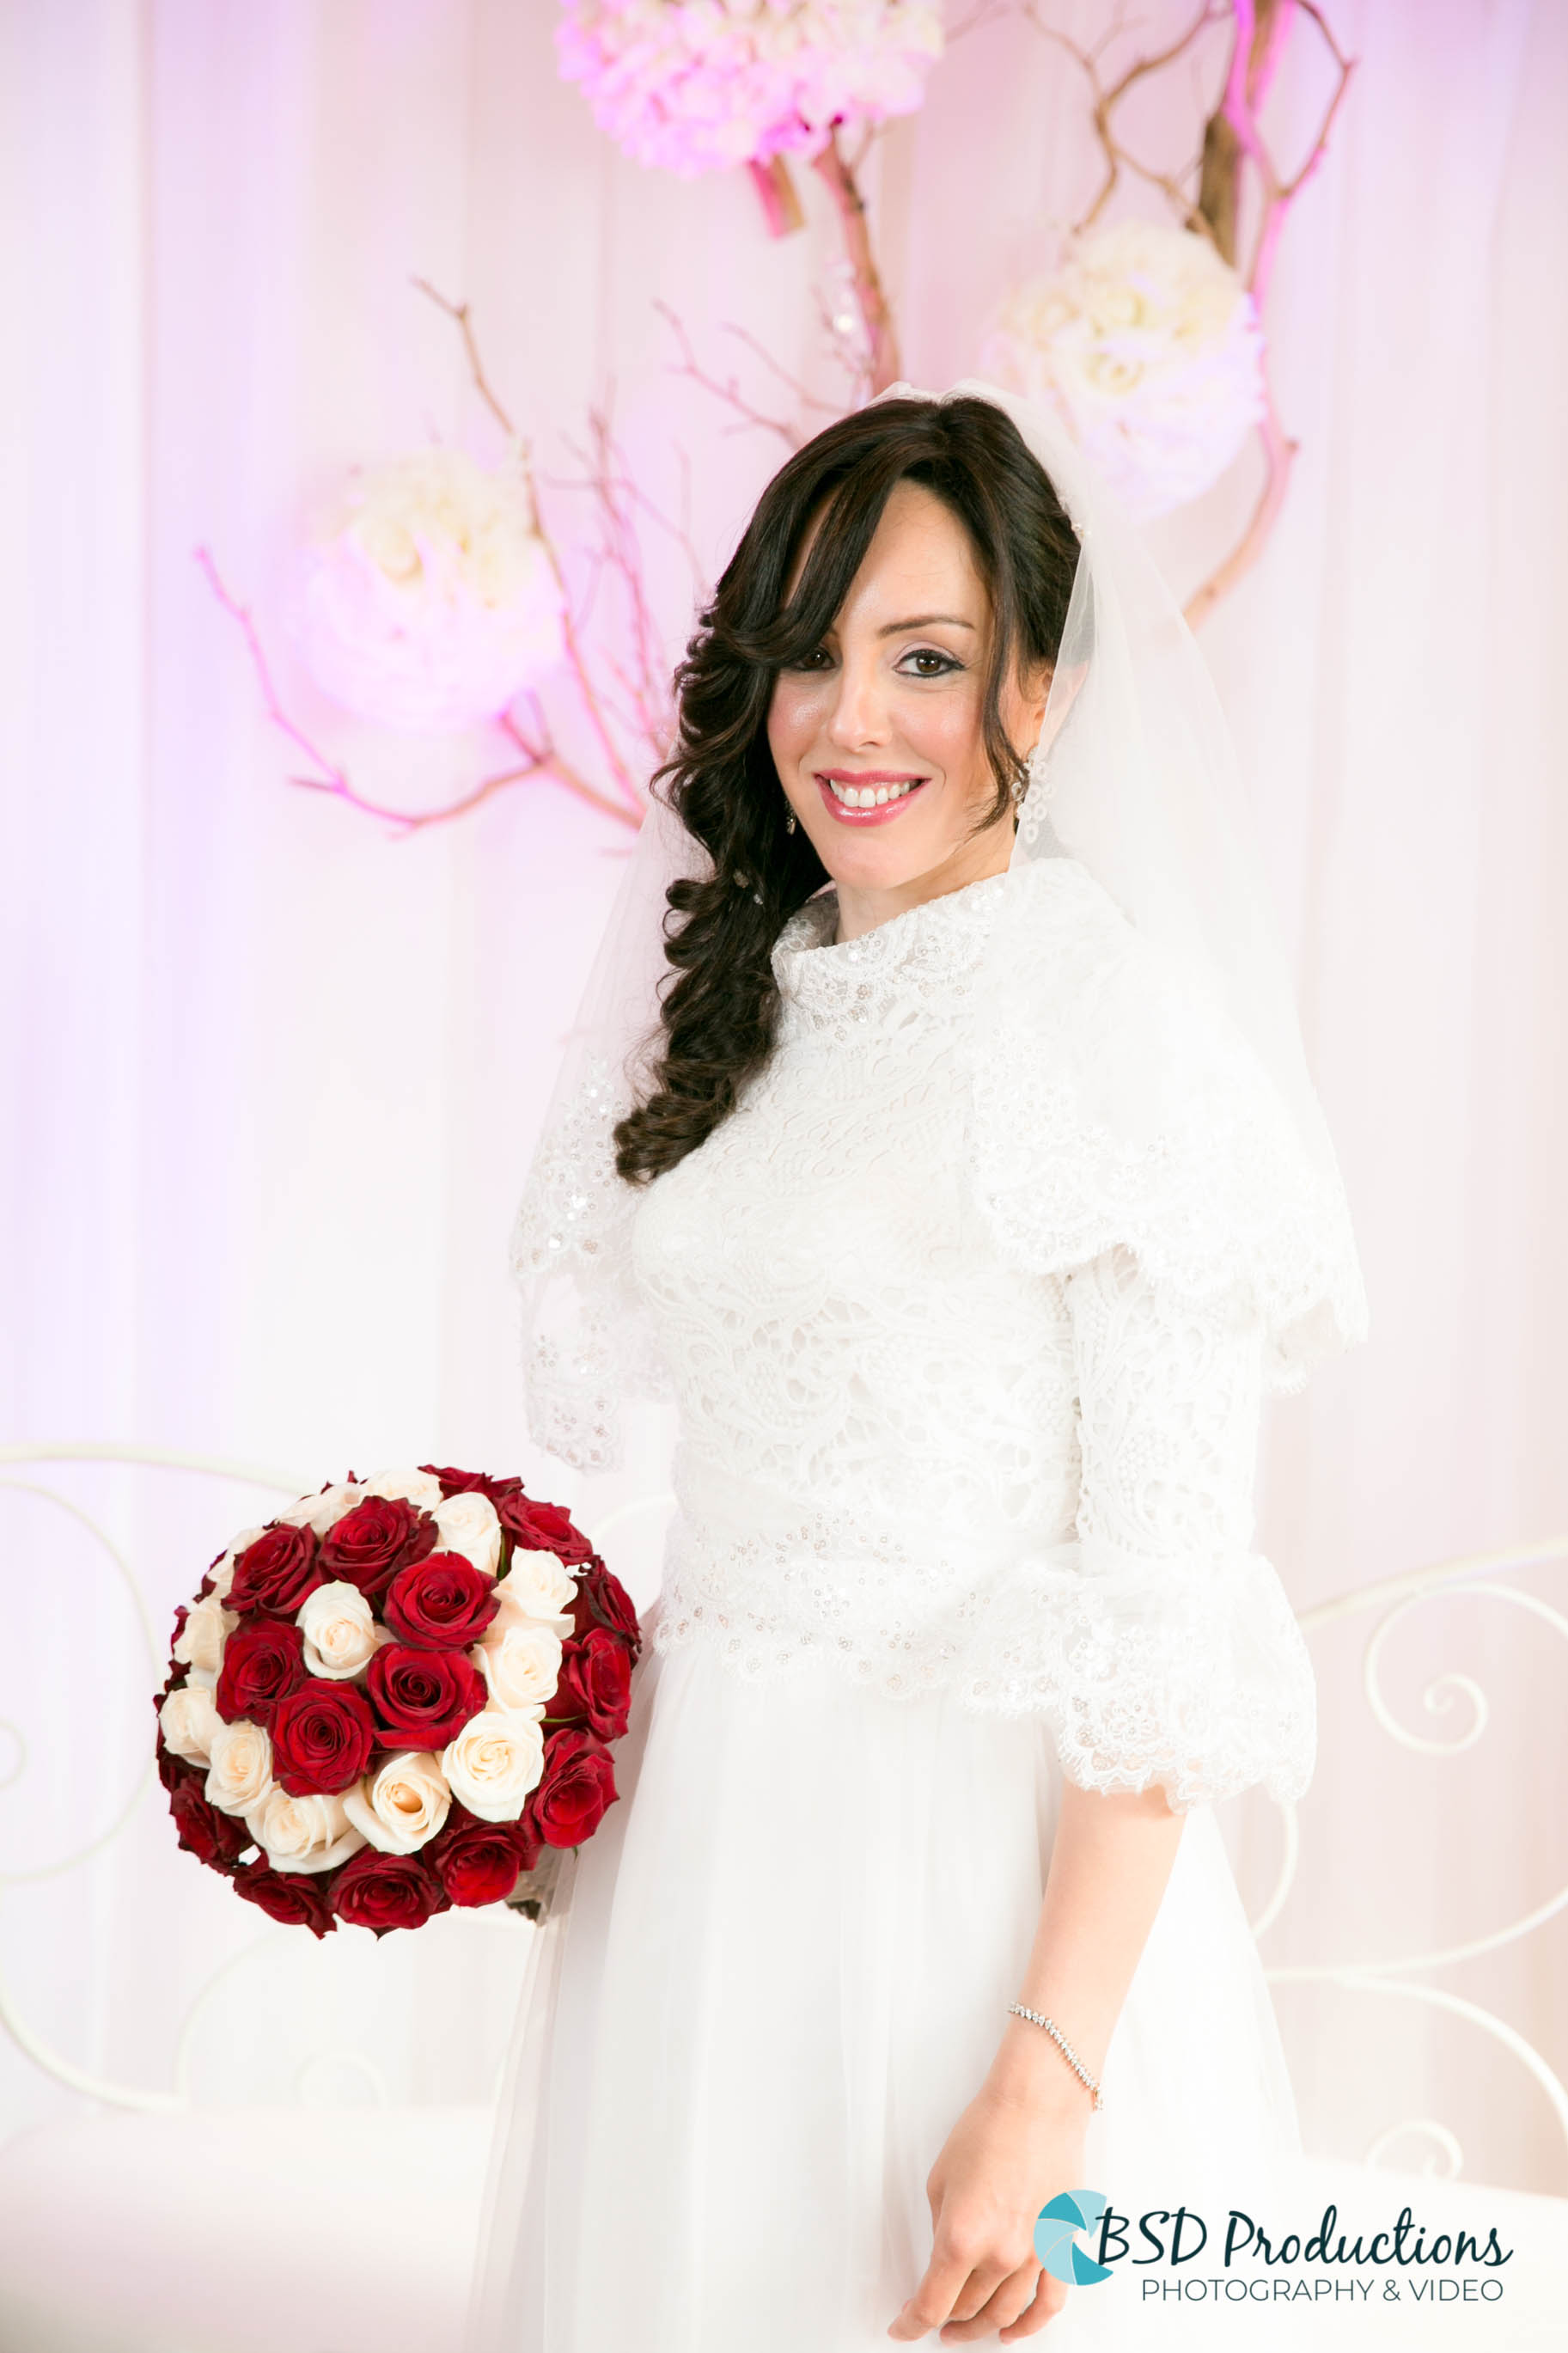 UH5A2428 Wedding – BSD Productions Photography